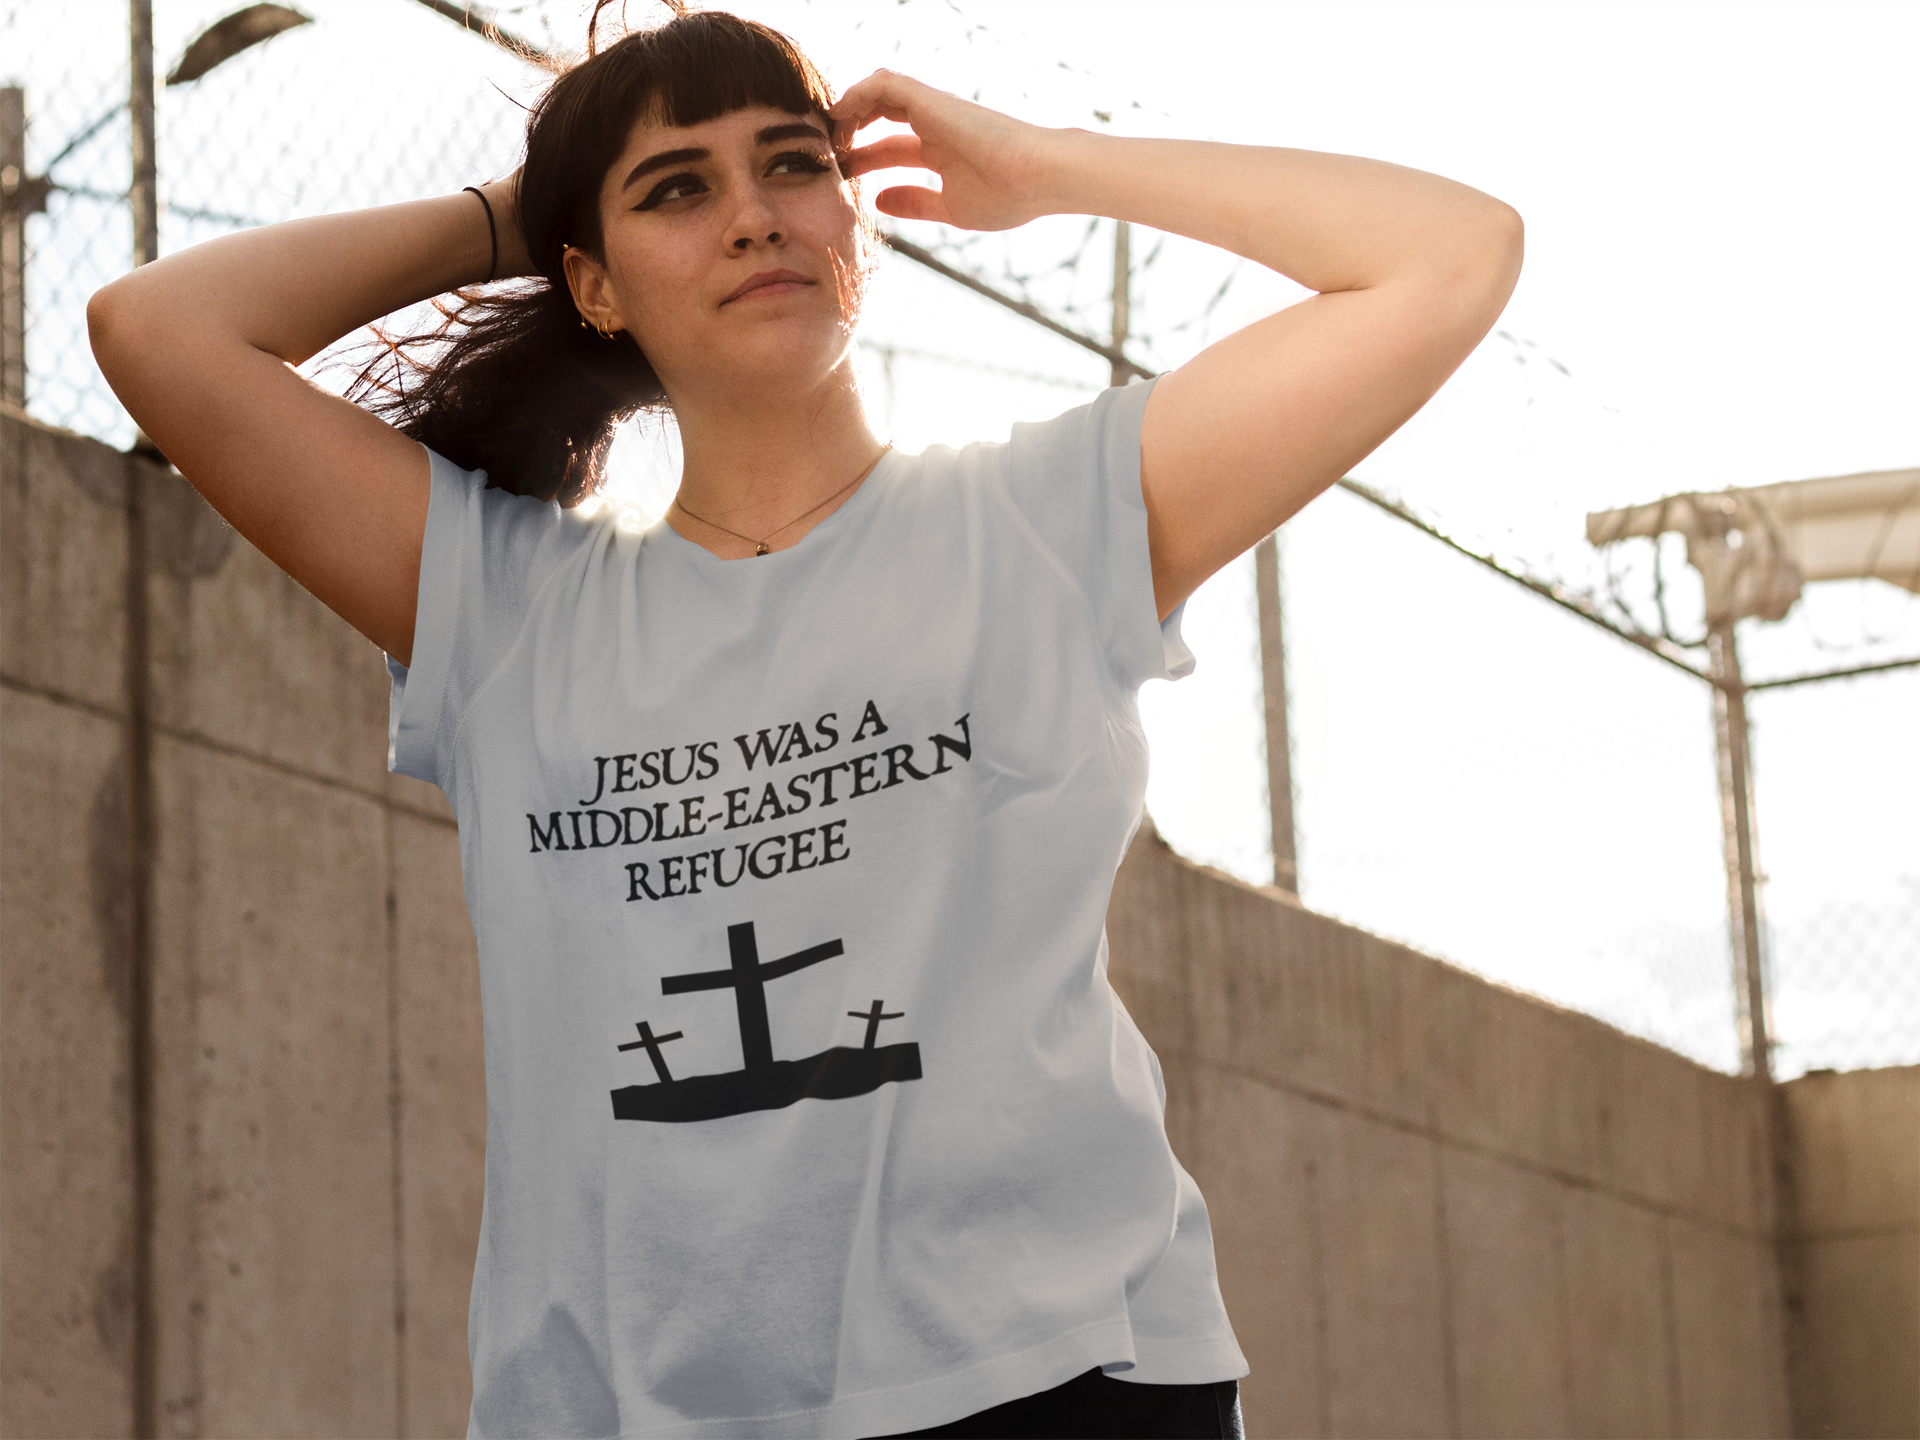 Jesus was a middle eastern refugee christian liberal t-shirts and clothing